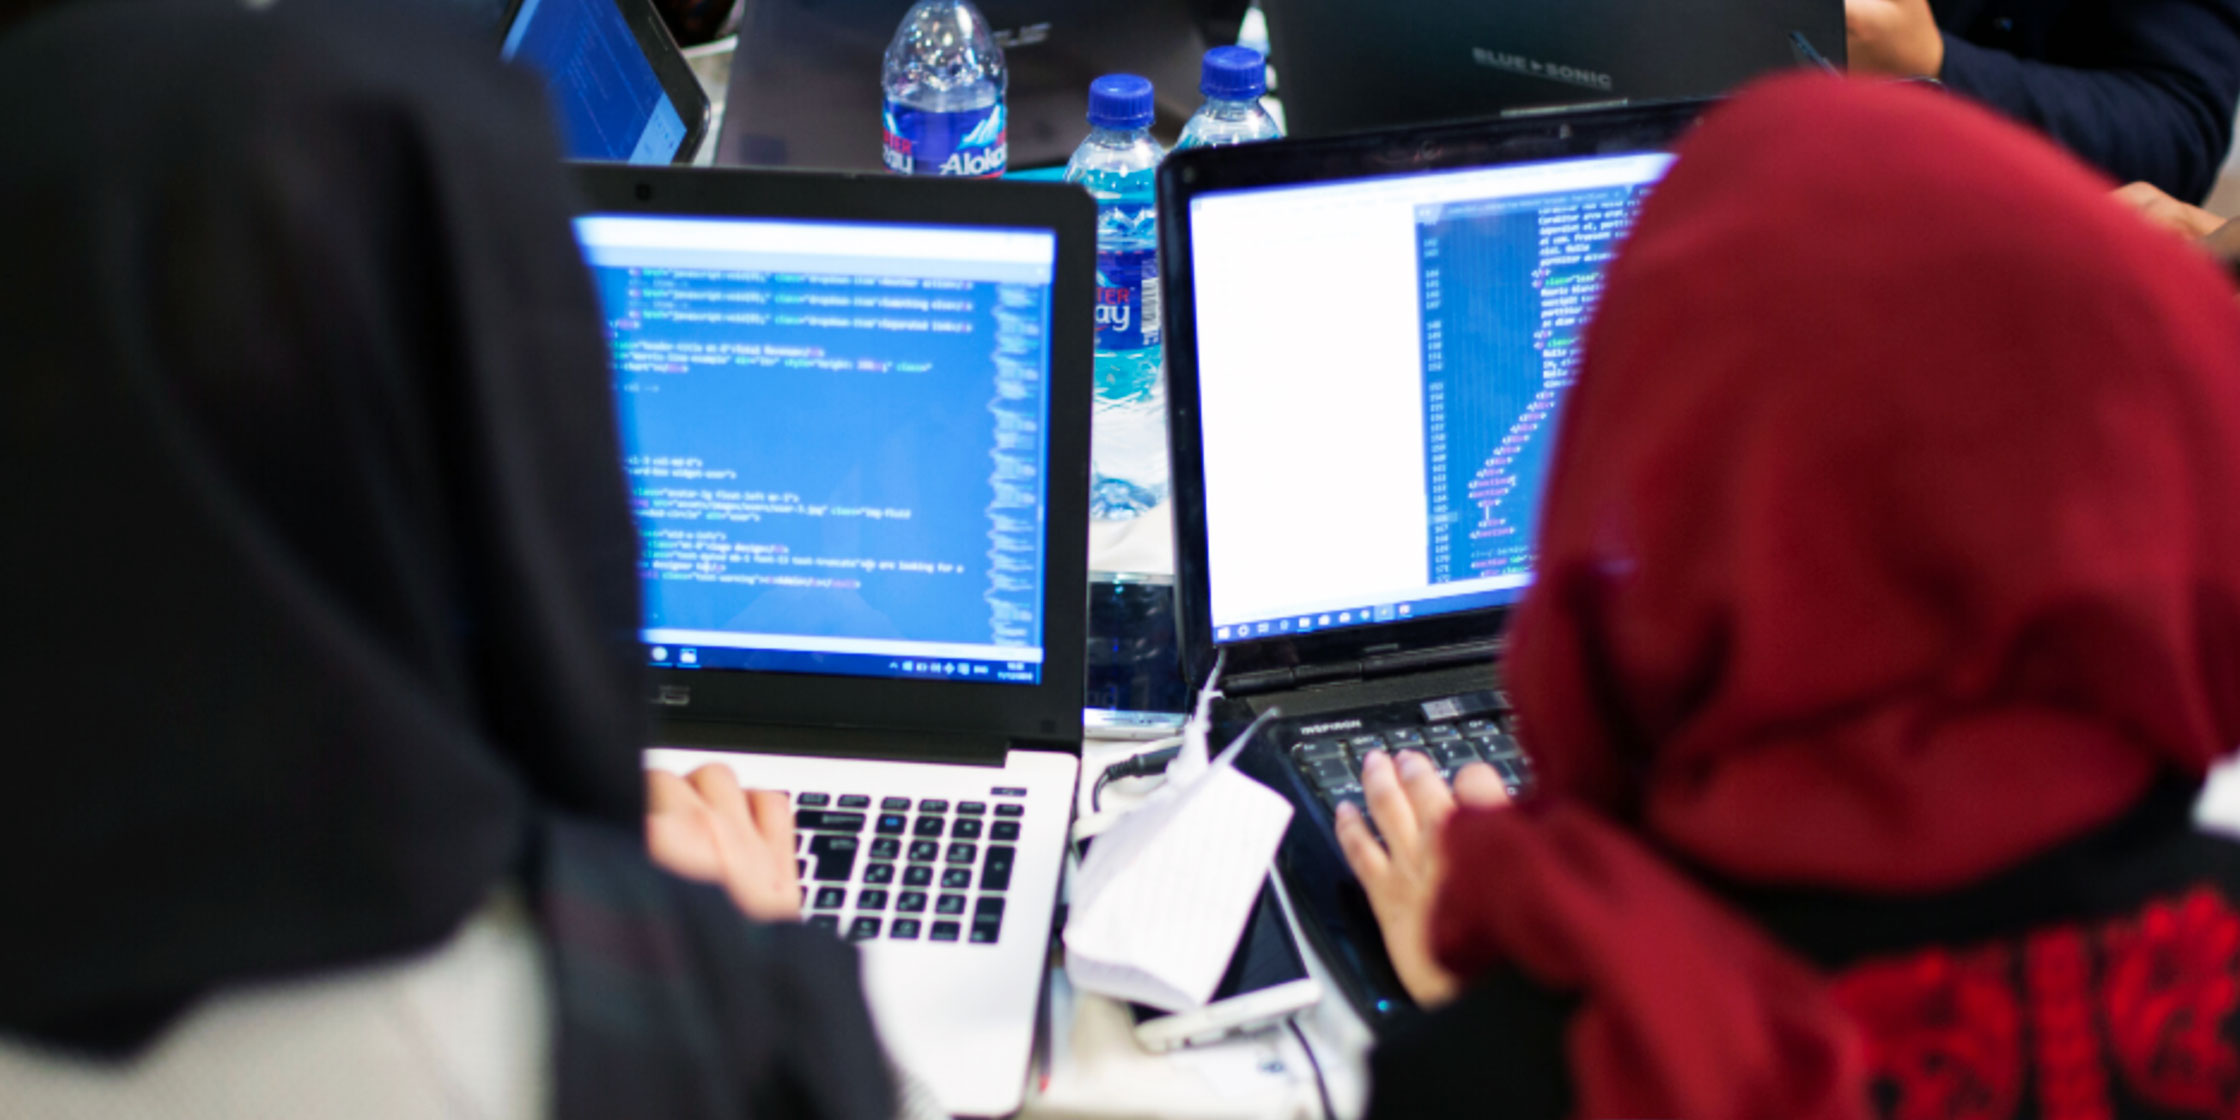 Two women wearing hijab are working at their laptops